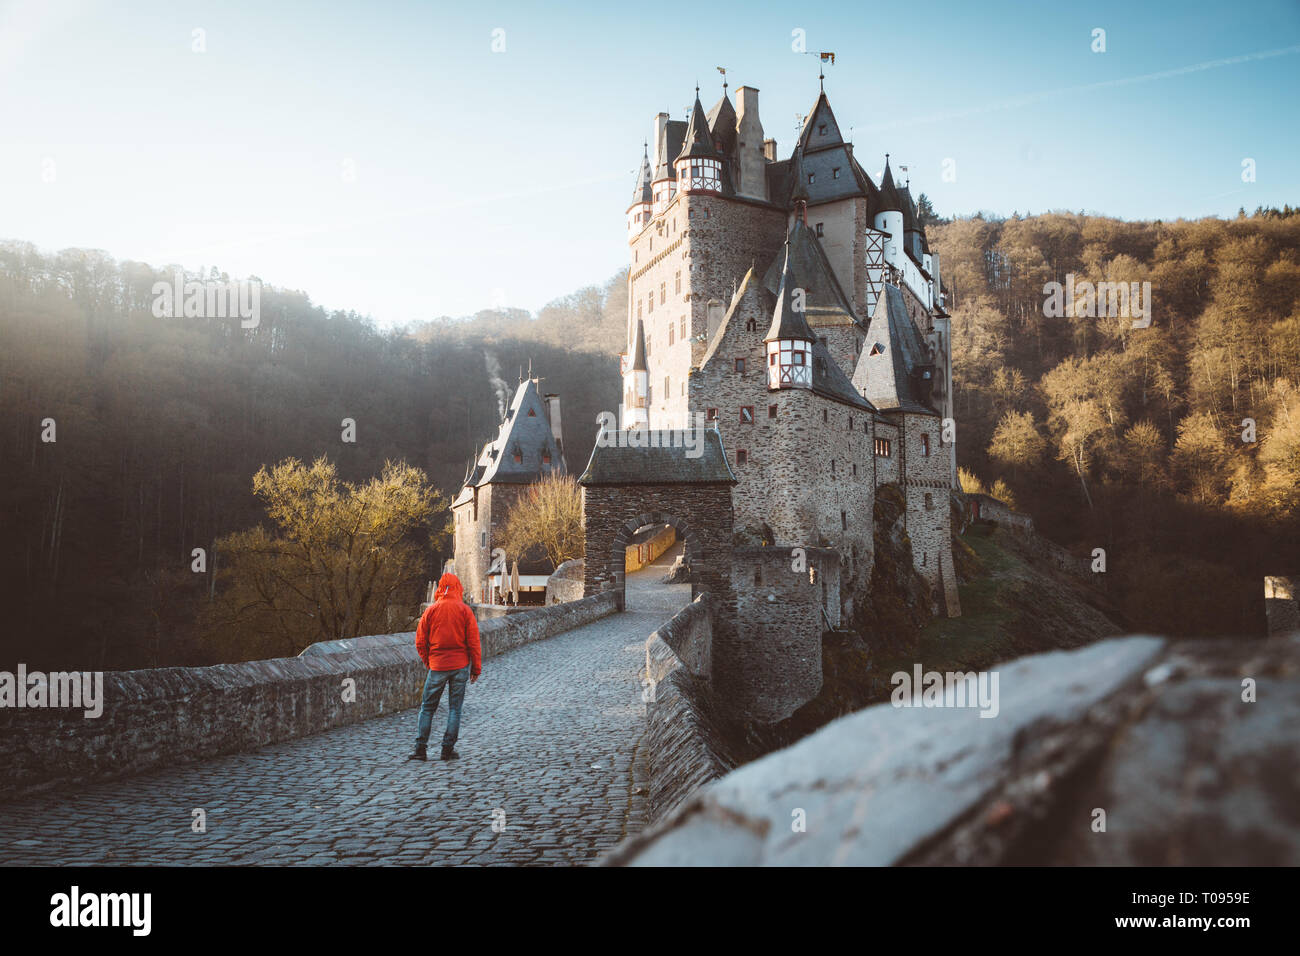 Panorama view of young explorer with backpack taking in the view at famous Eltz Castle at sunrise in fall, Rheinland-Pfalz, Germany Stock Photo